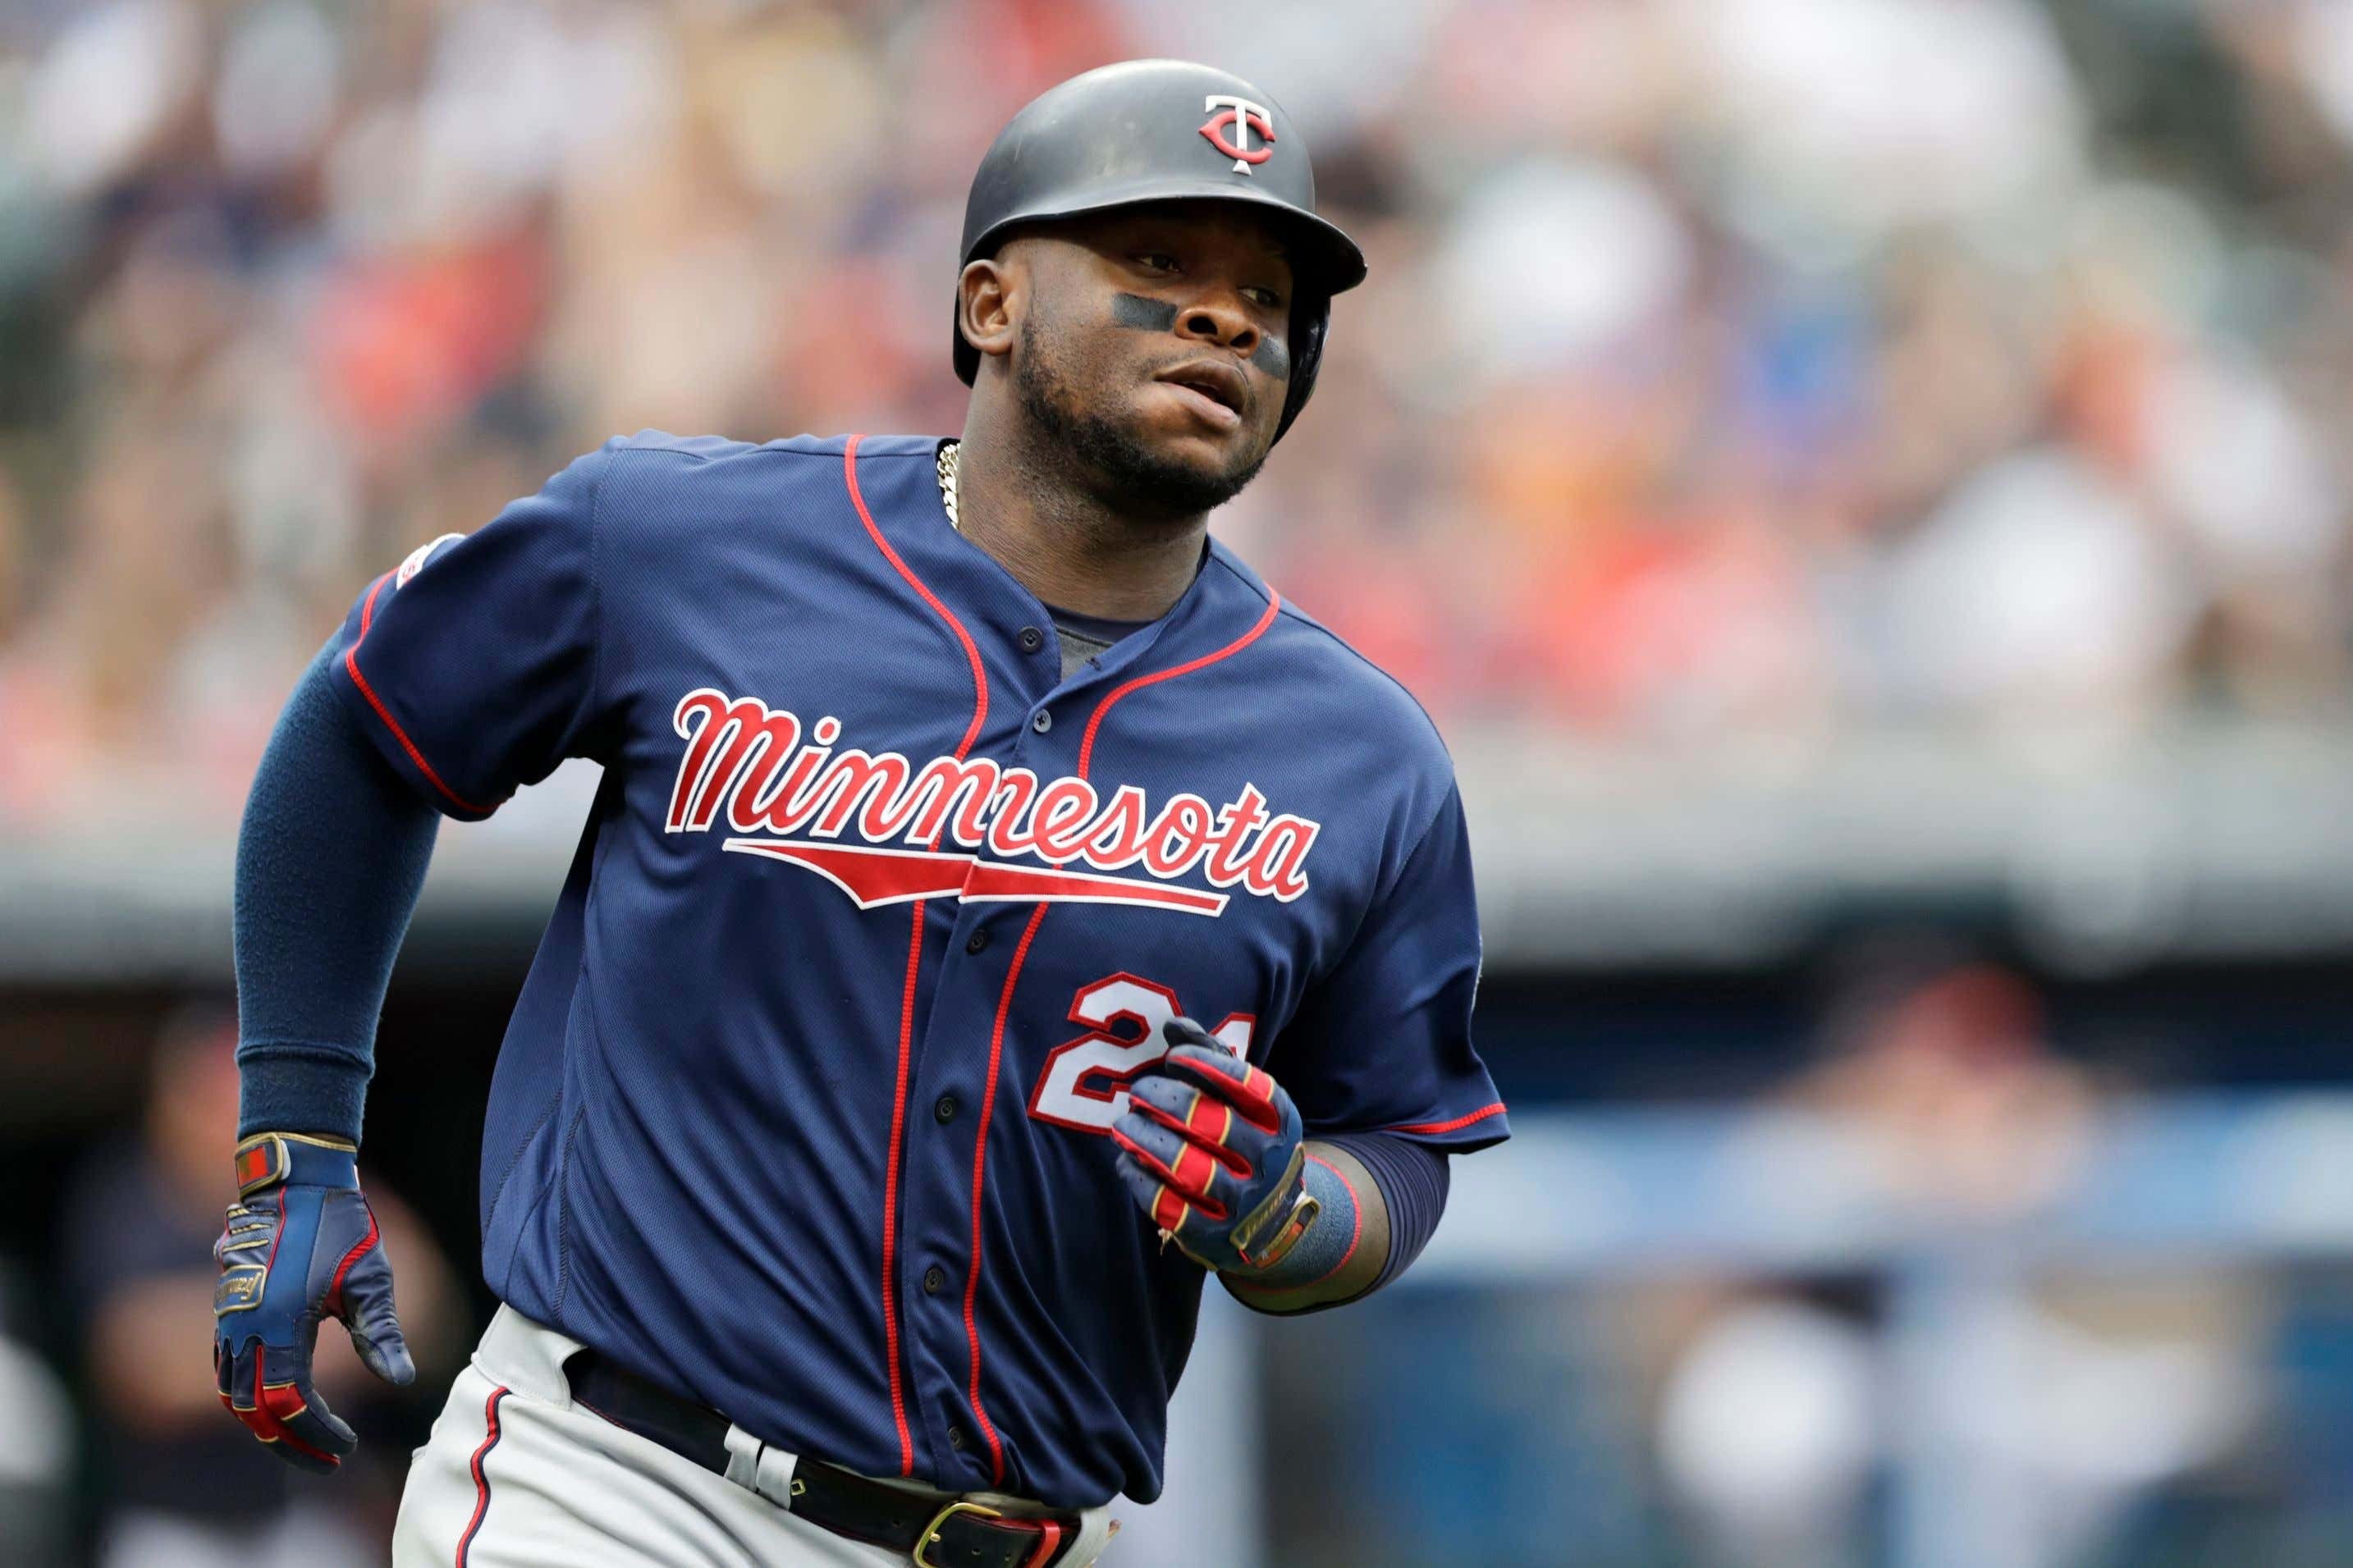 Minnesota Twins' Miguel Sano runs the bases after hitting a solo home run in the third inning in a baseball game against the Cleveland Indians, in Cleveland